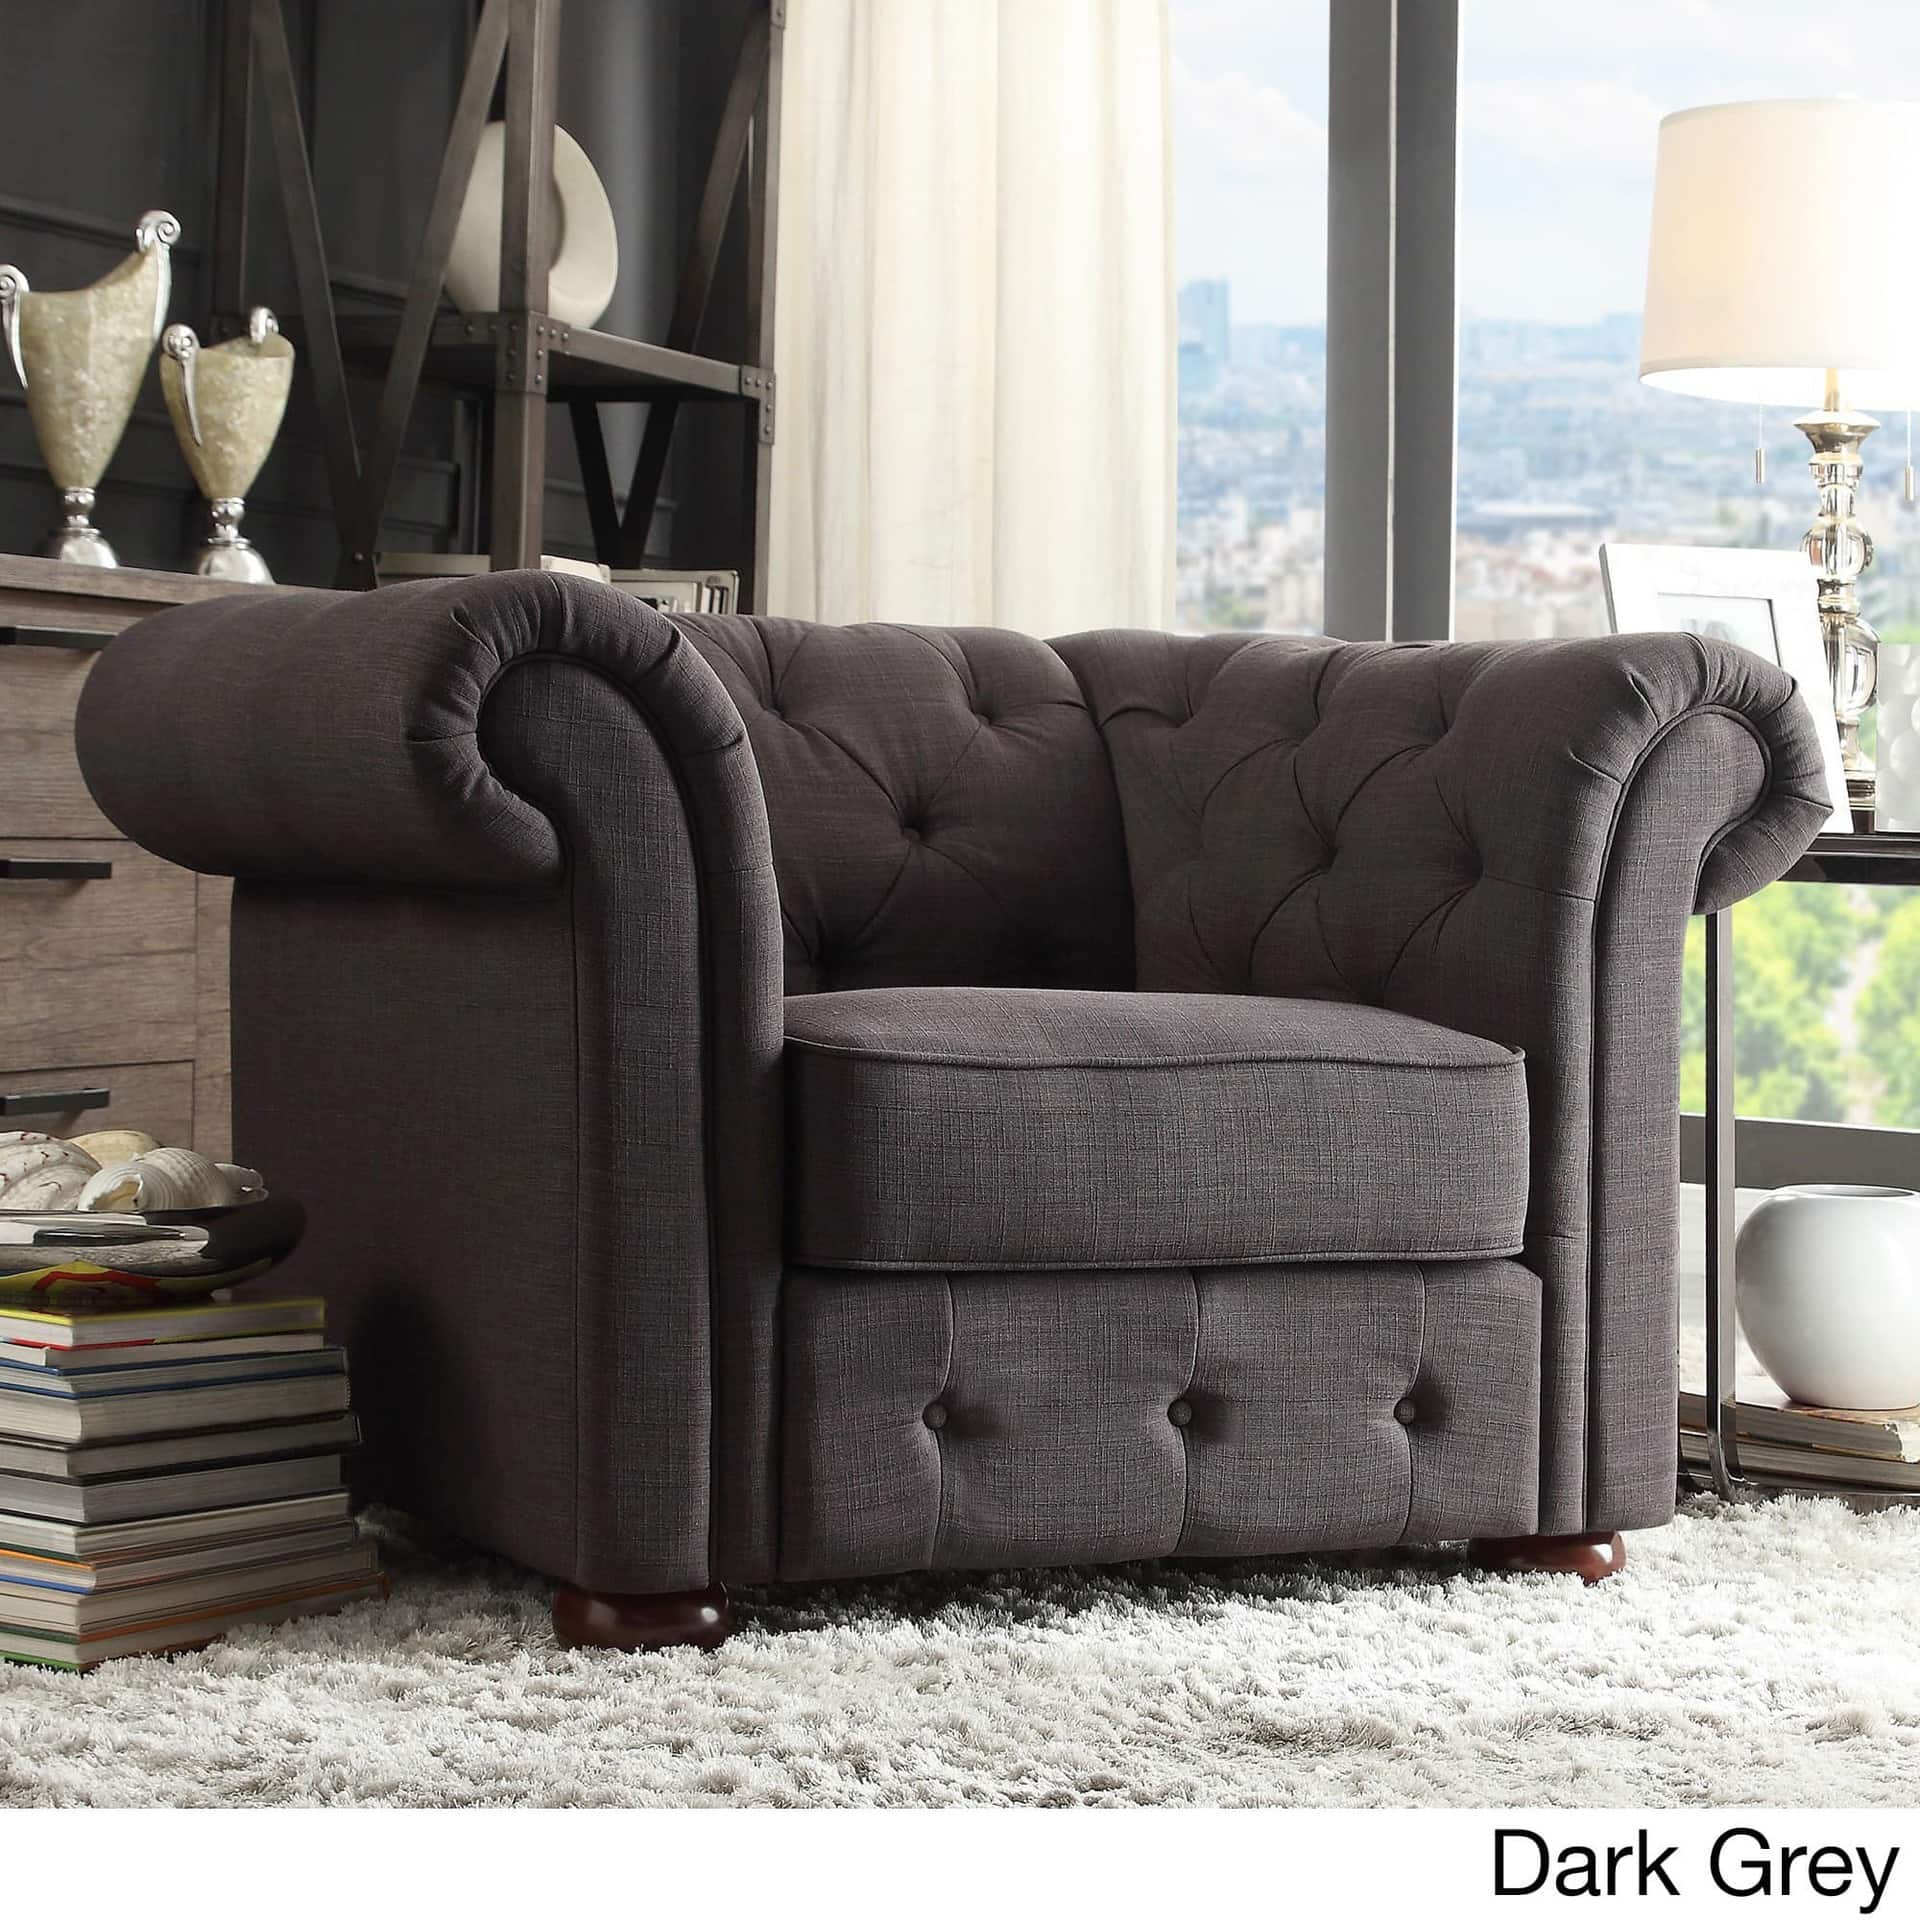 single chesterfield sofa chronos stores rh chronos stores com